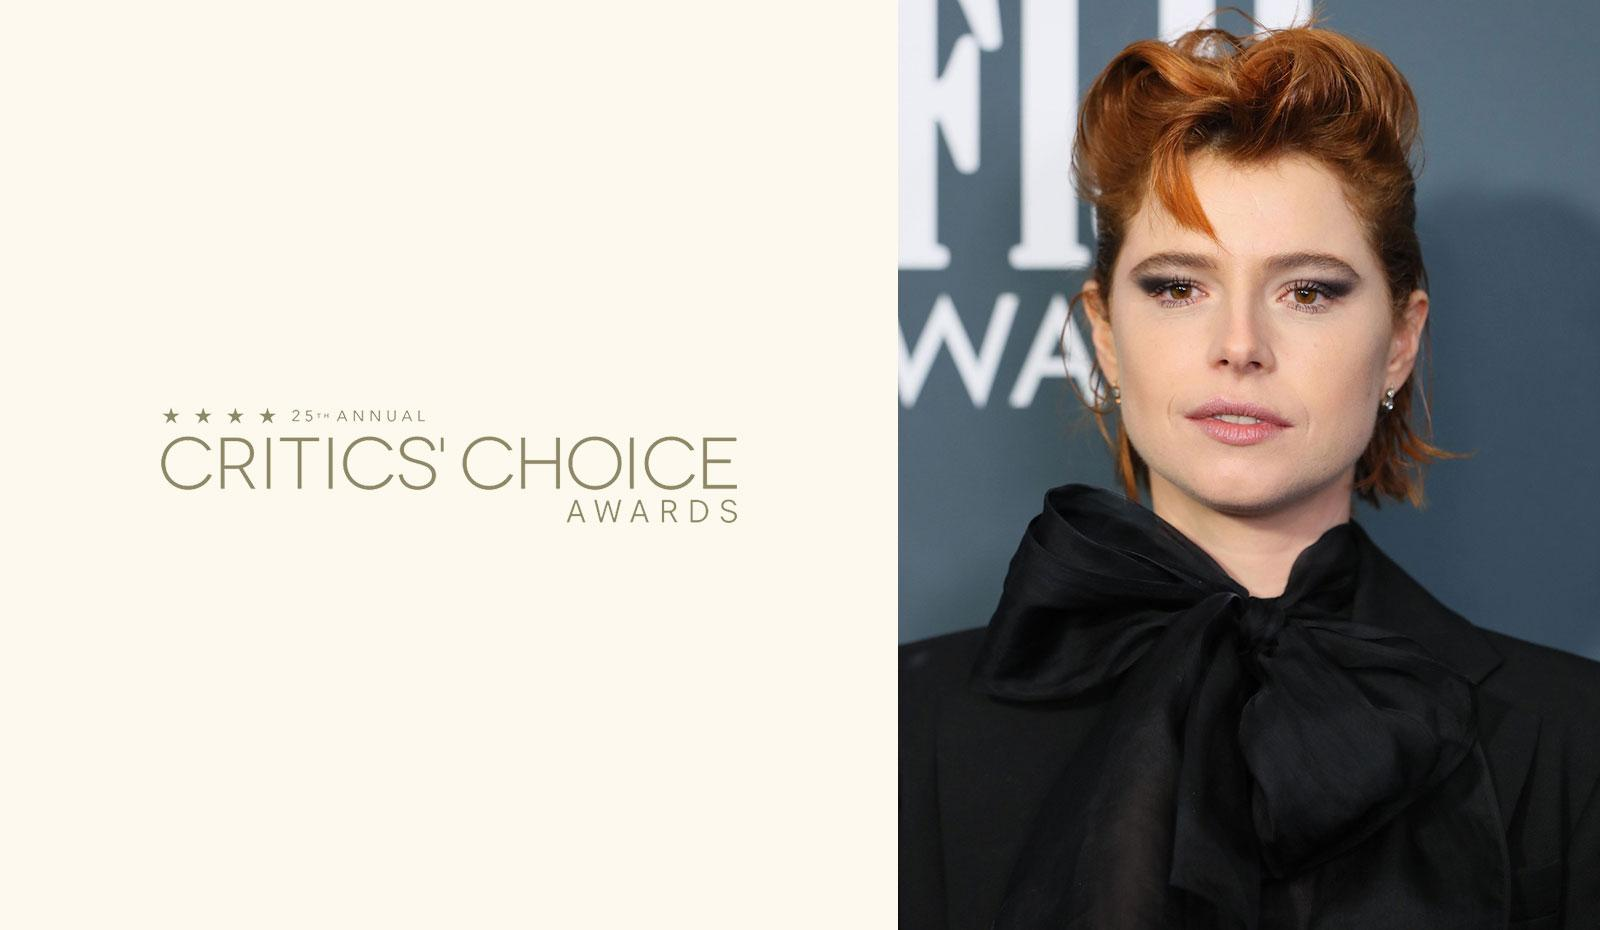 2020 Critic's Choice Awards: Jessie Buckley's Effortless Faux Mullet